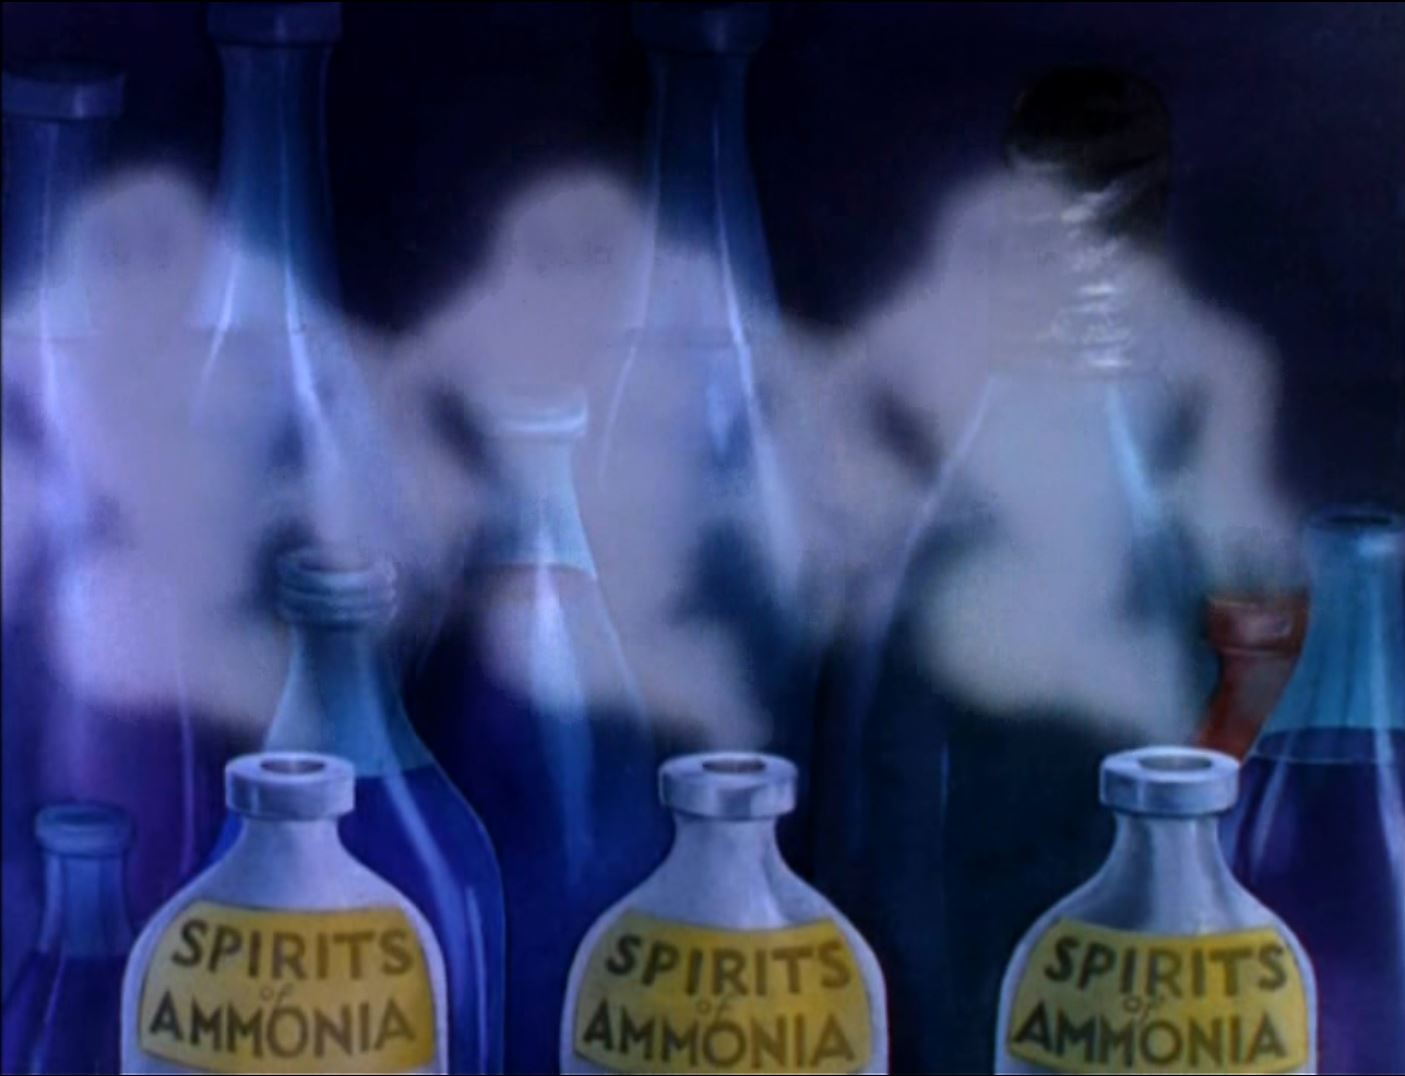 Spirits of Ammooohhhnia! Brrrrrrr! Things that creep upoooohhhn ya! Brrrrrr!